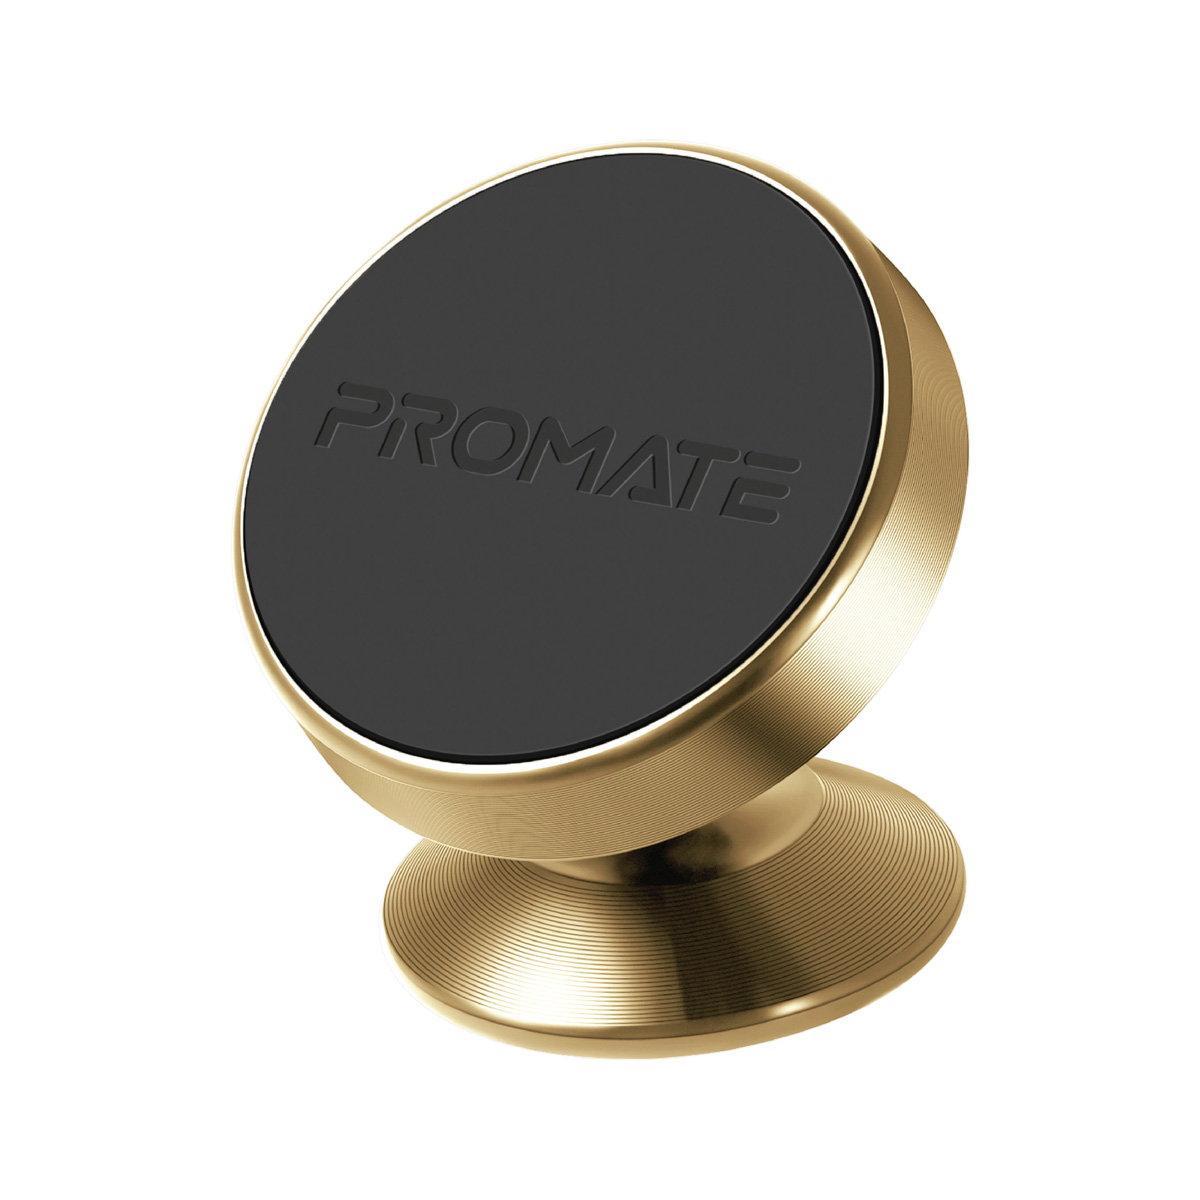 Promate Magnetic Car Phone Holder, Multi-Angle 360 Degree Metallic Magnetic Car Phone Mount with Anti-Slip Surface, Anti- Distraction Design and Fast Swift-Snap Technology for Smartphones, Tablets, GPS, Magnetto-2 Gold